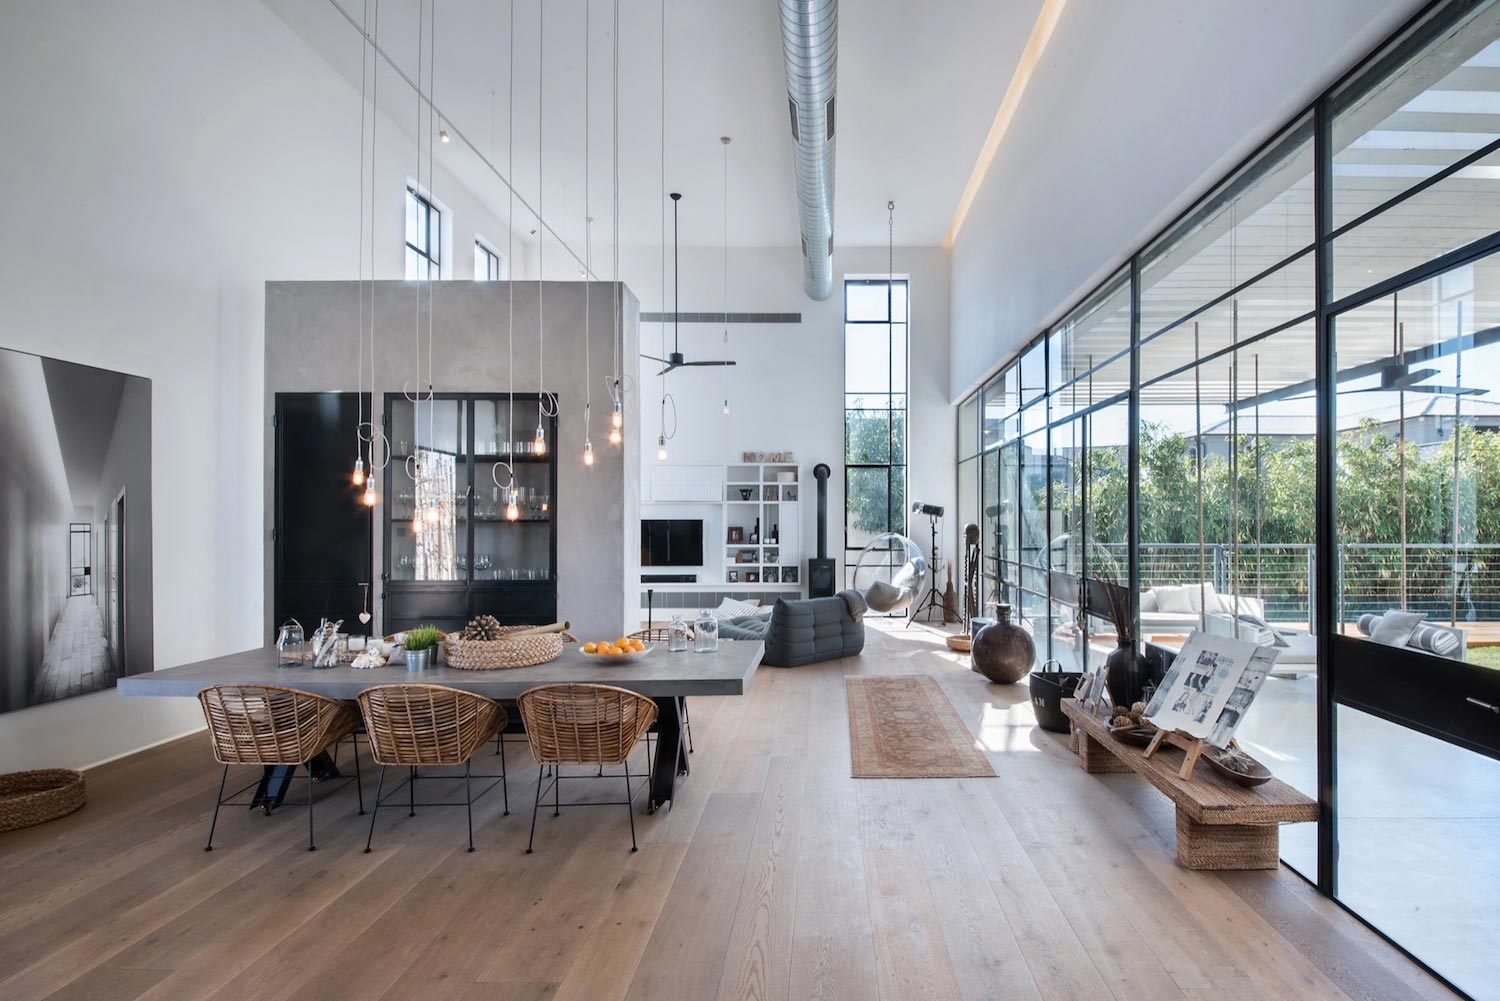 Modern Design of Savion Residence by Neuman Hayner Architects - CAANdesign | Architecture and home design blog